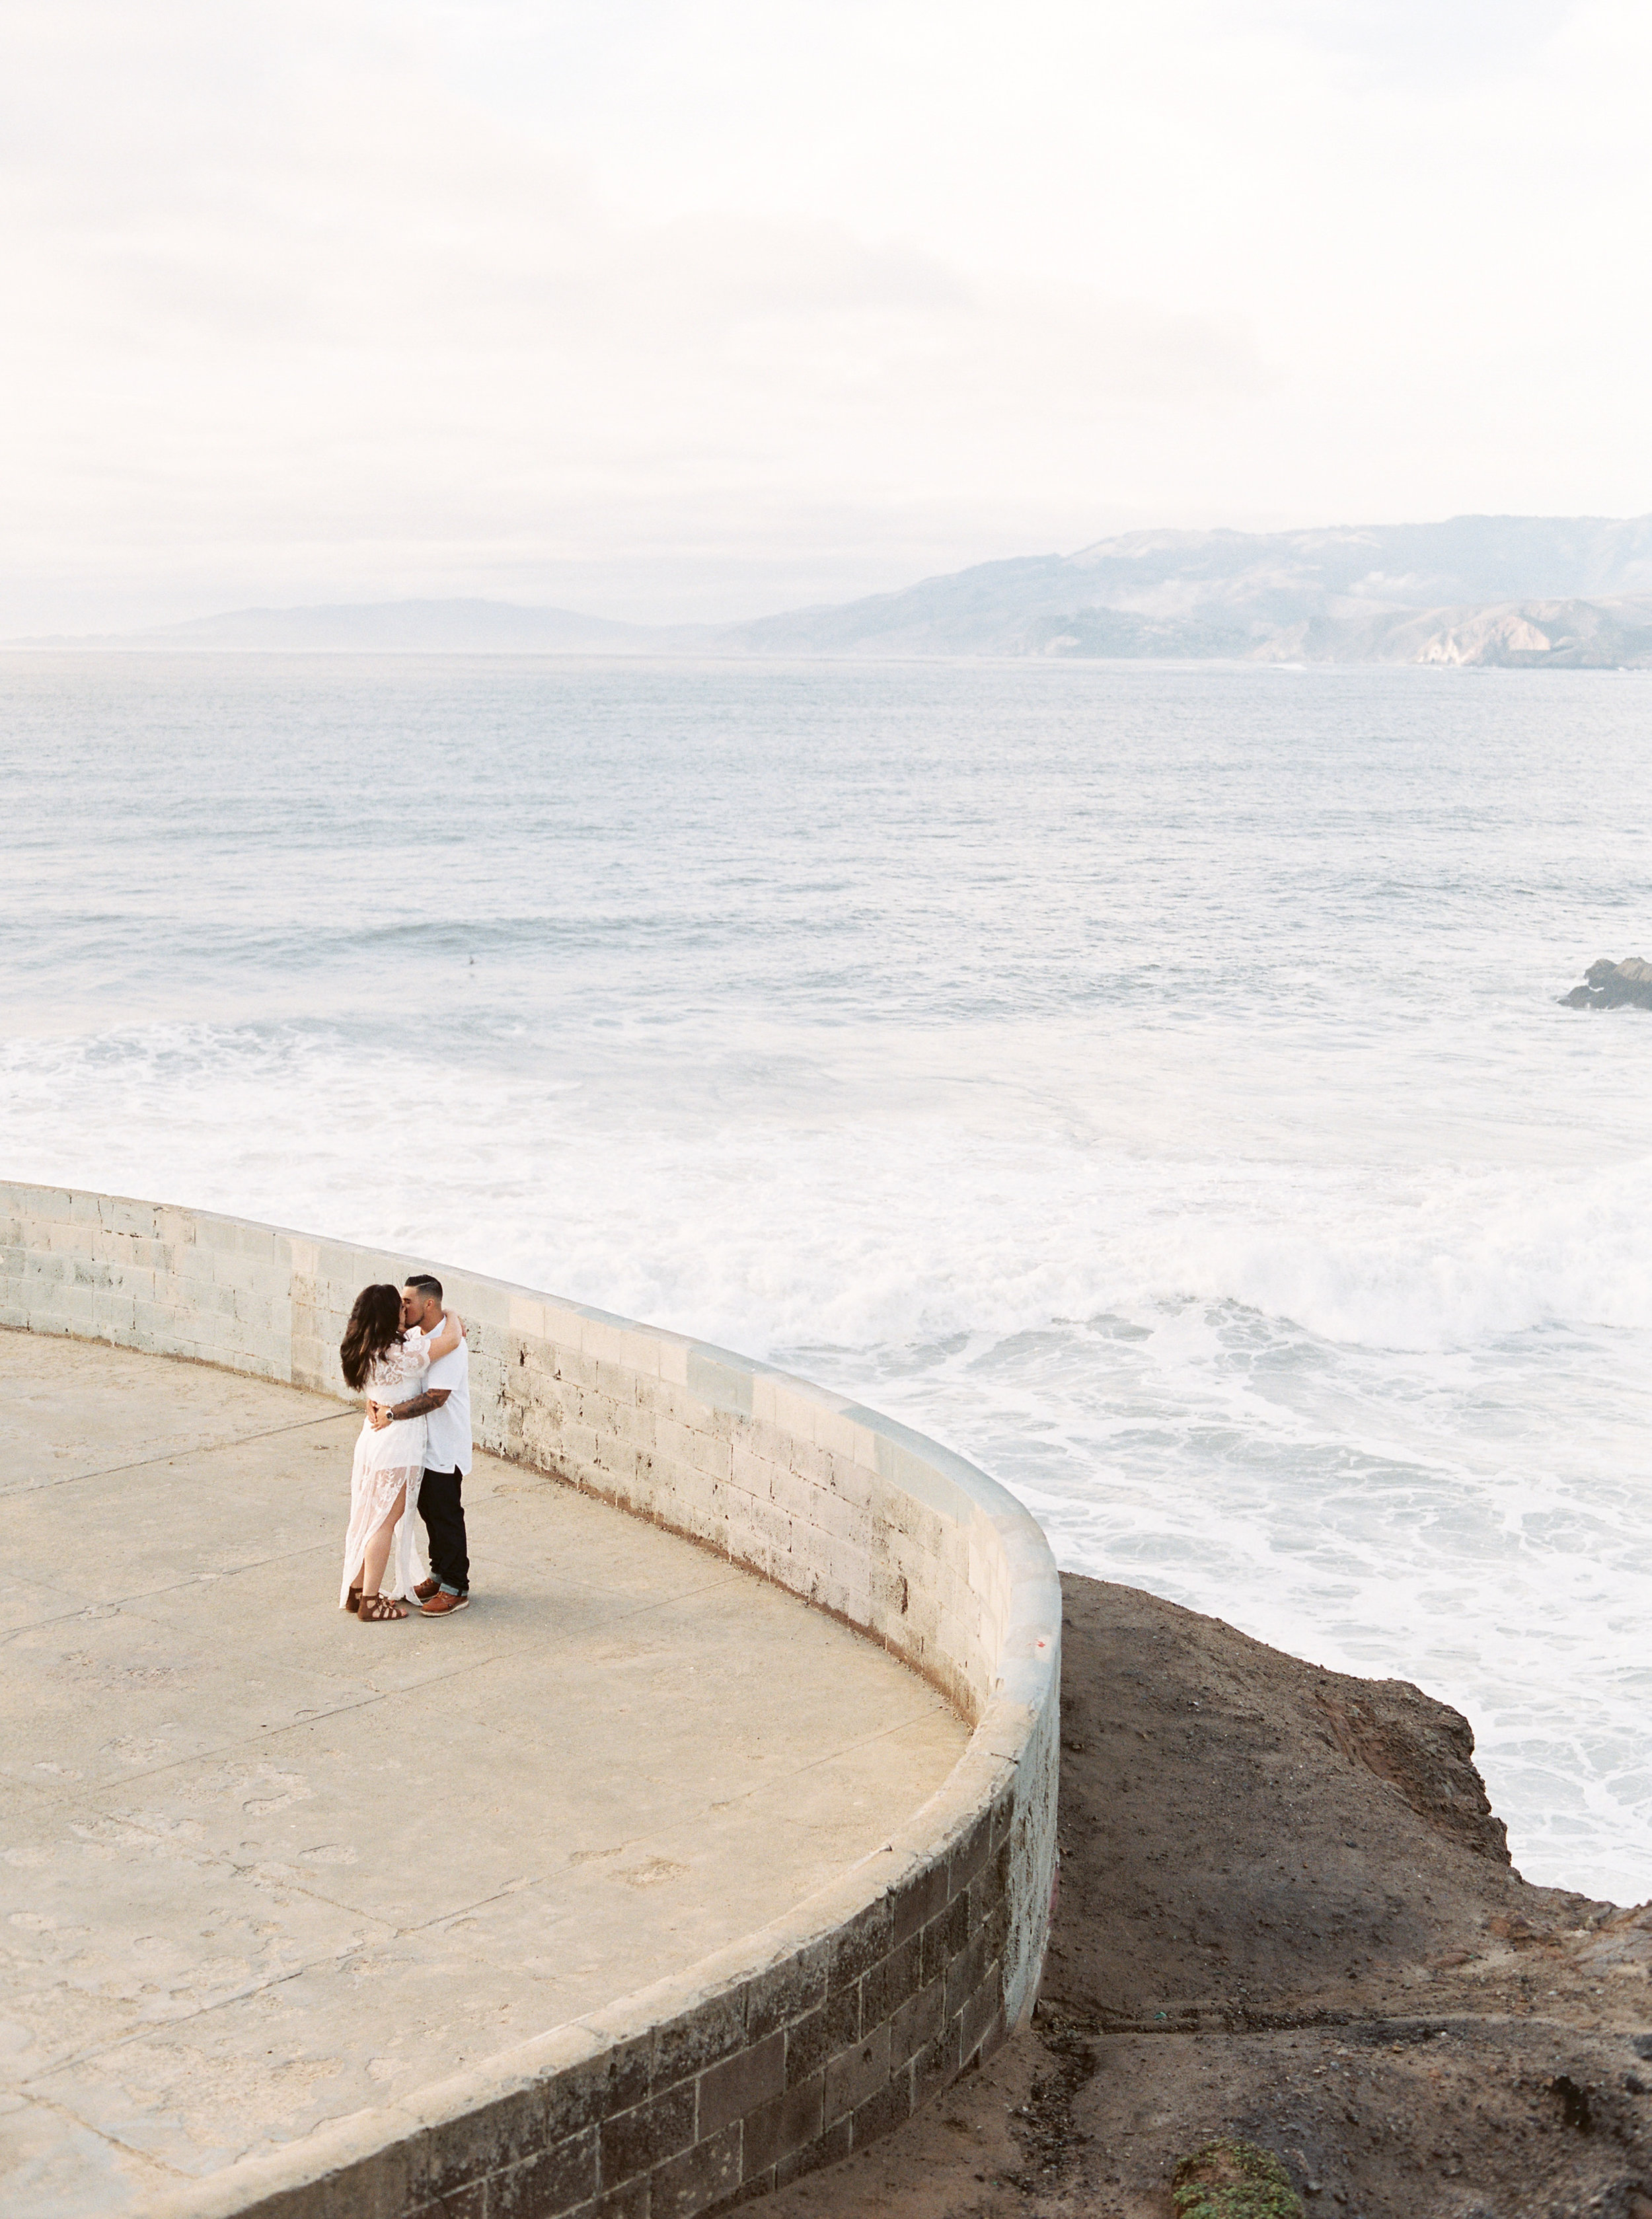 Sutro-baths-san-francisco-engagement-18.jpg